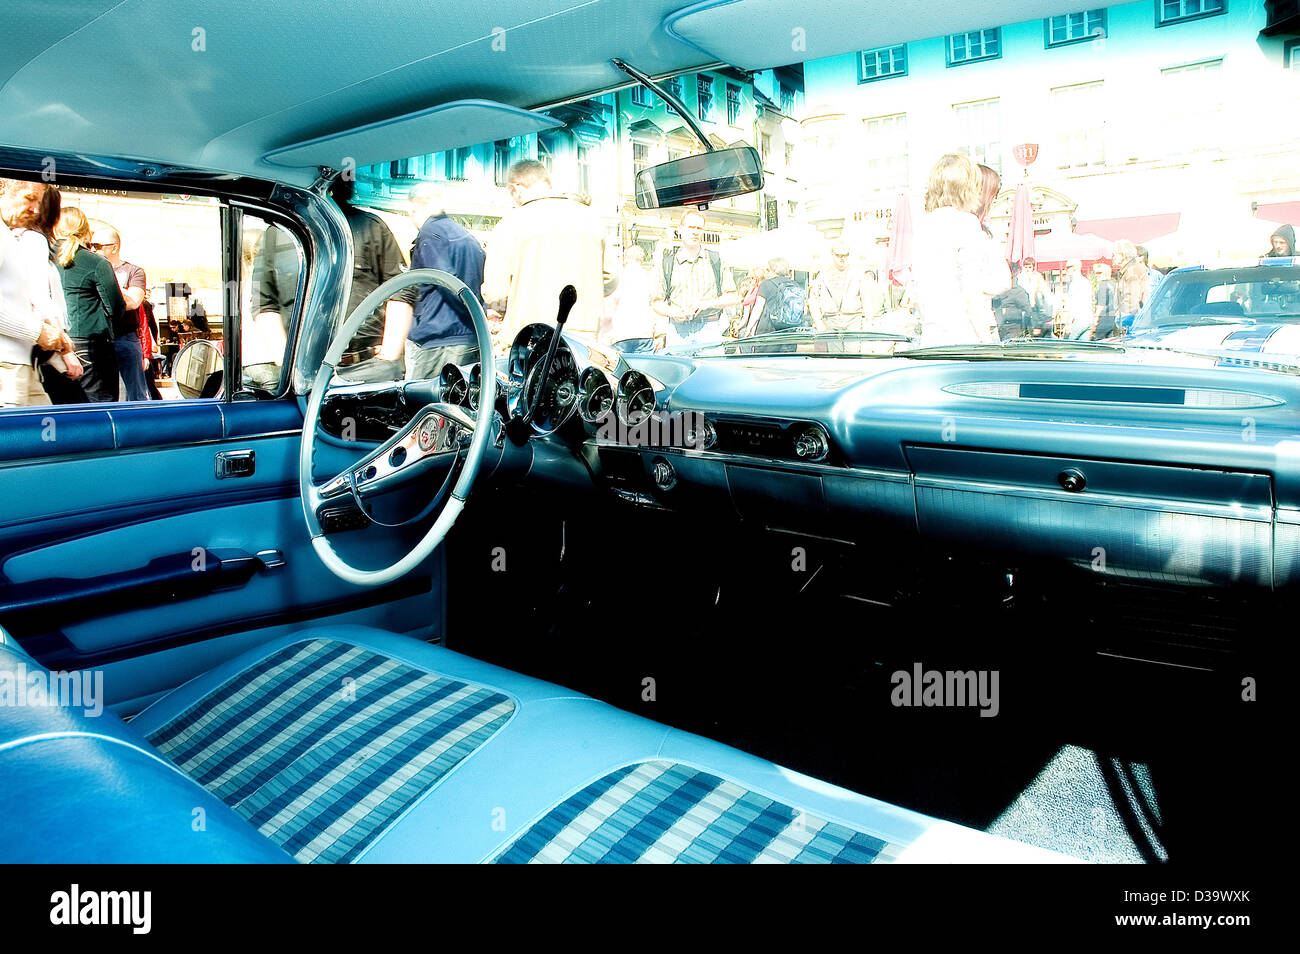 An Interior Of An Old American Muscle Car Stock Photo 53692987 Alamy